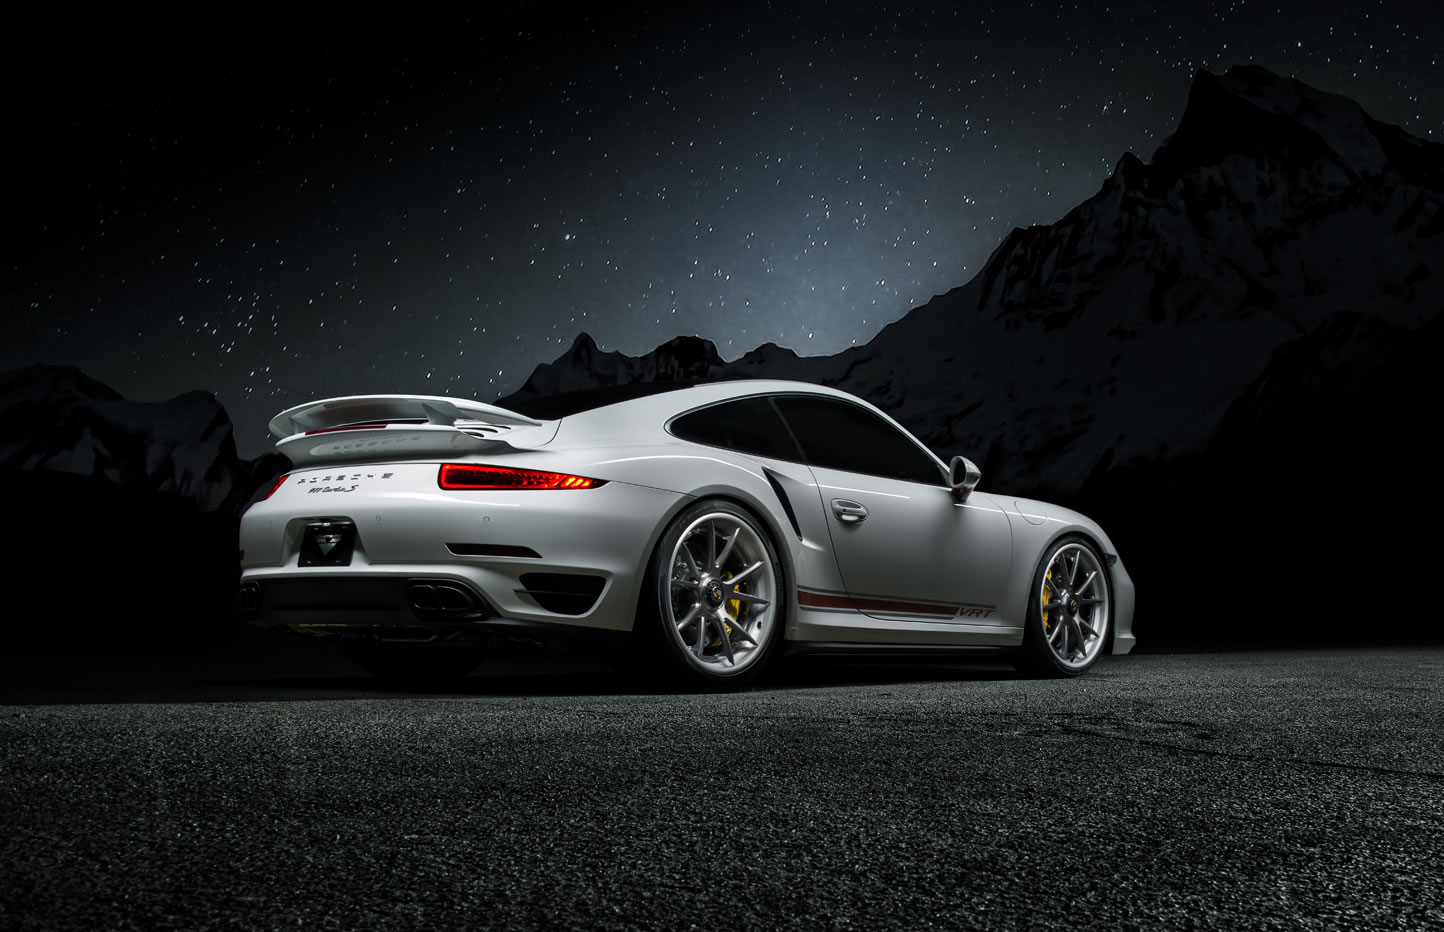 for each set of vse 004 wheels 30 hours of precision machining is required - 2015 Porsche 911 Turbo